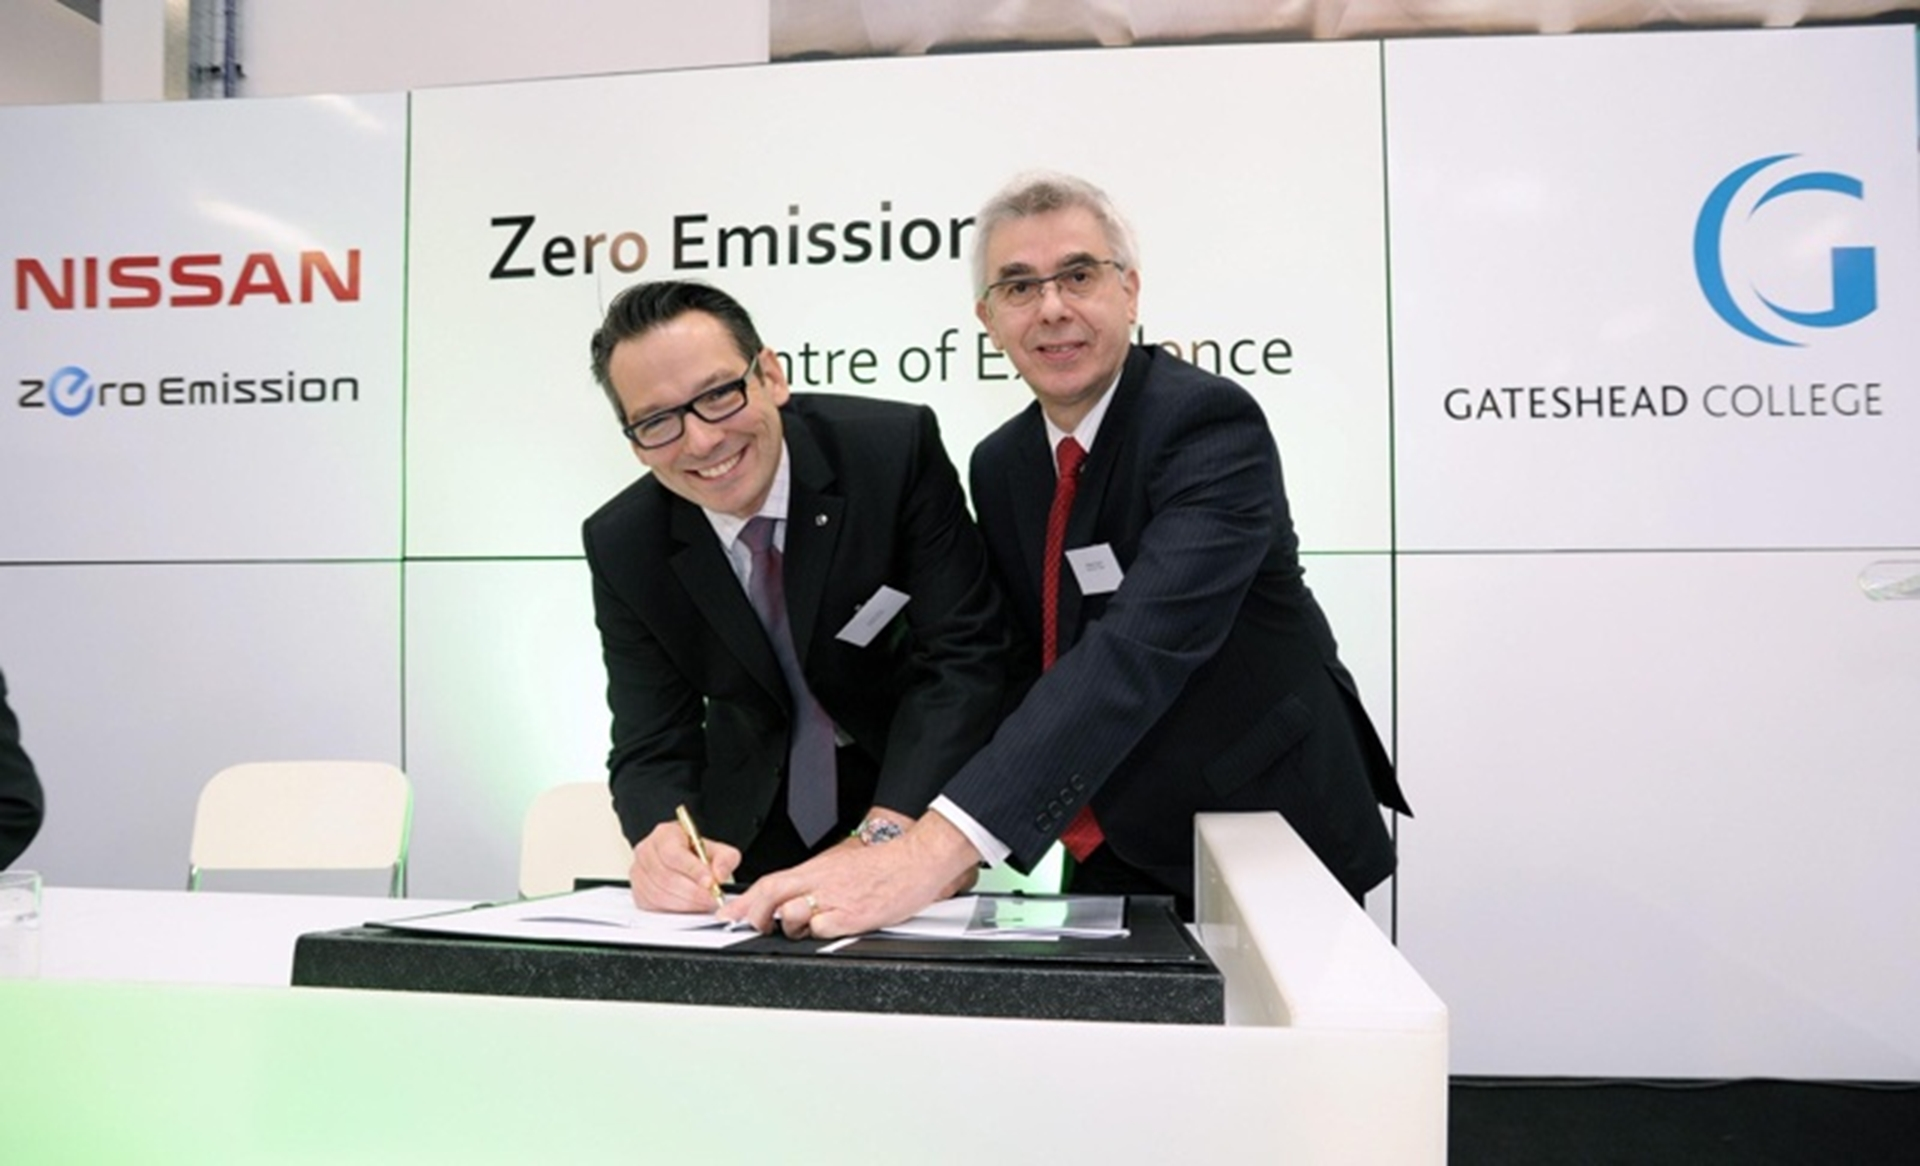 Nissan to Develop Zero Emission Centre